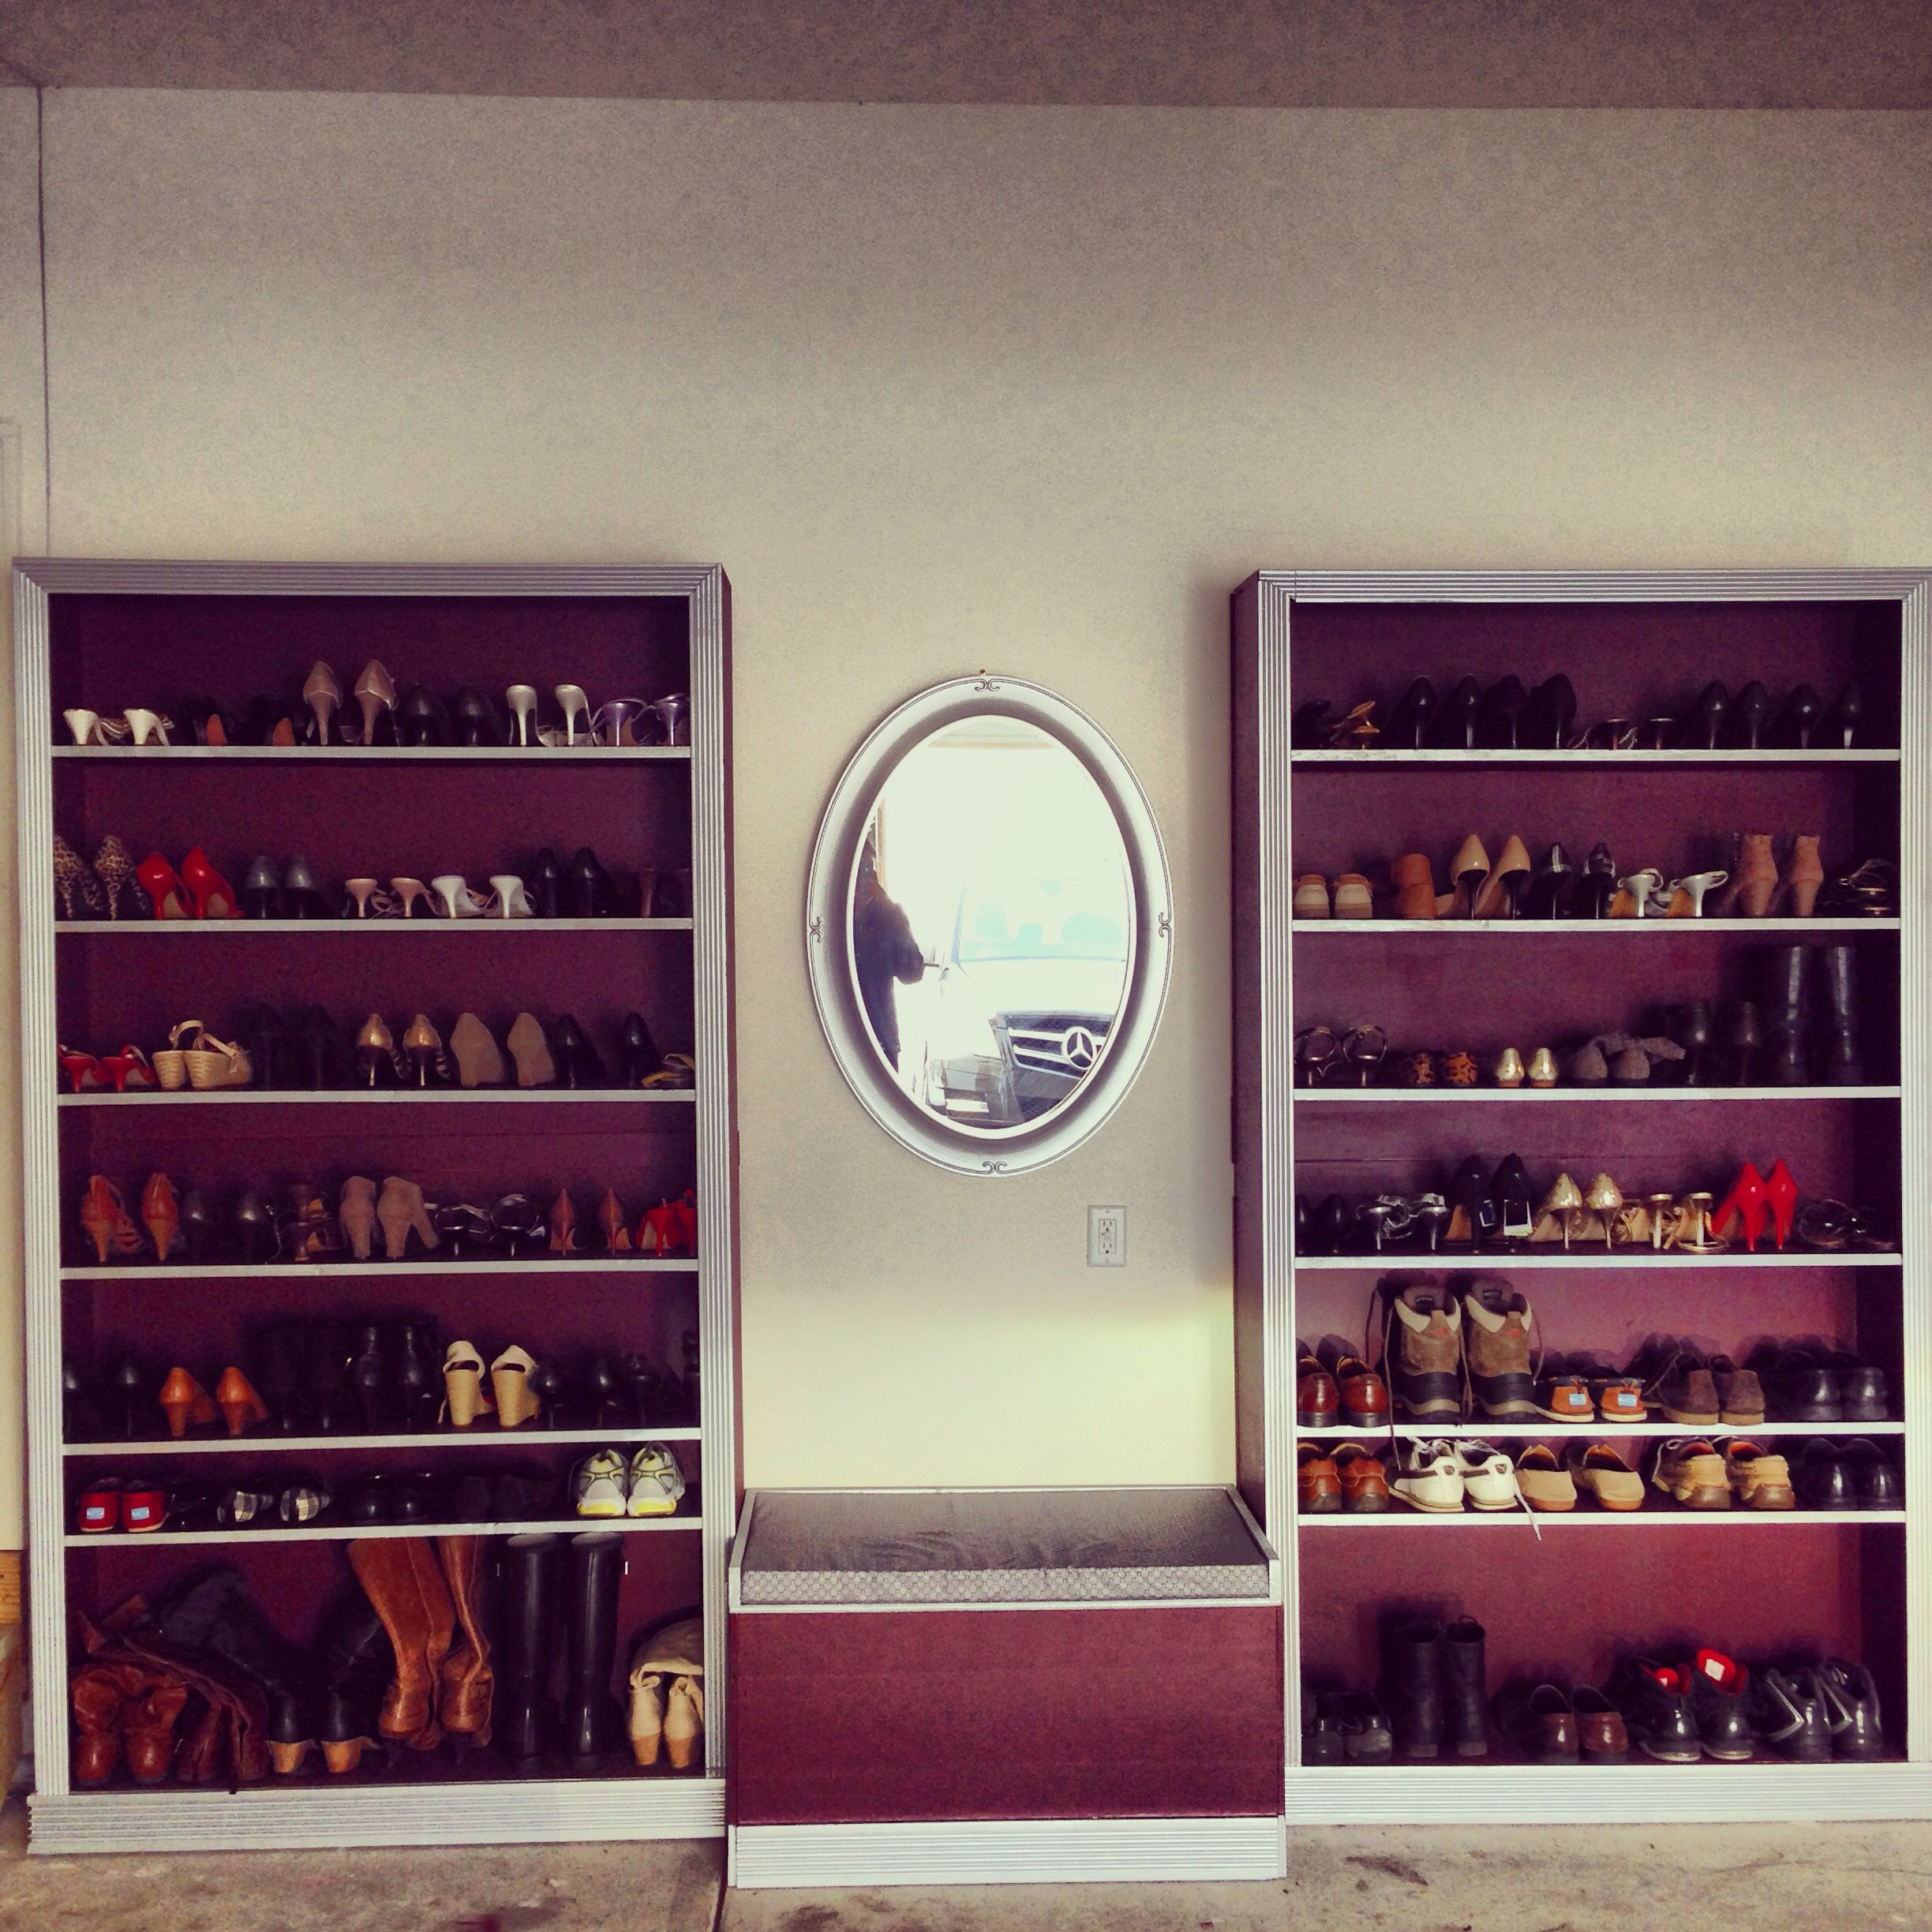 DIY shoe rack. Organize your shoes with a simple customized shoe rack. Choose your paint, fabric, and trim!